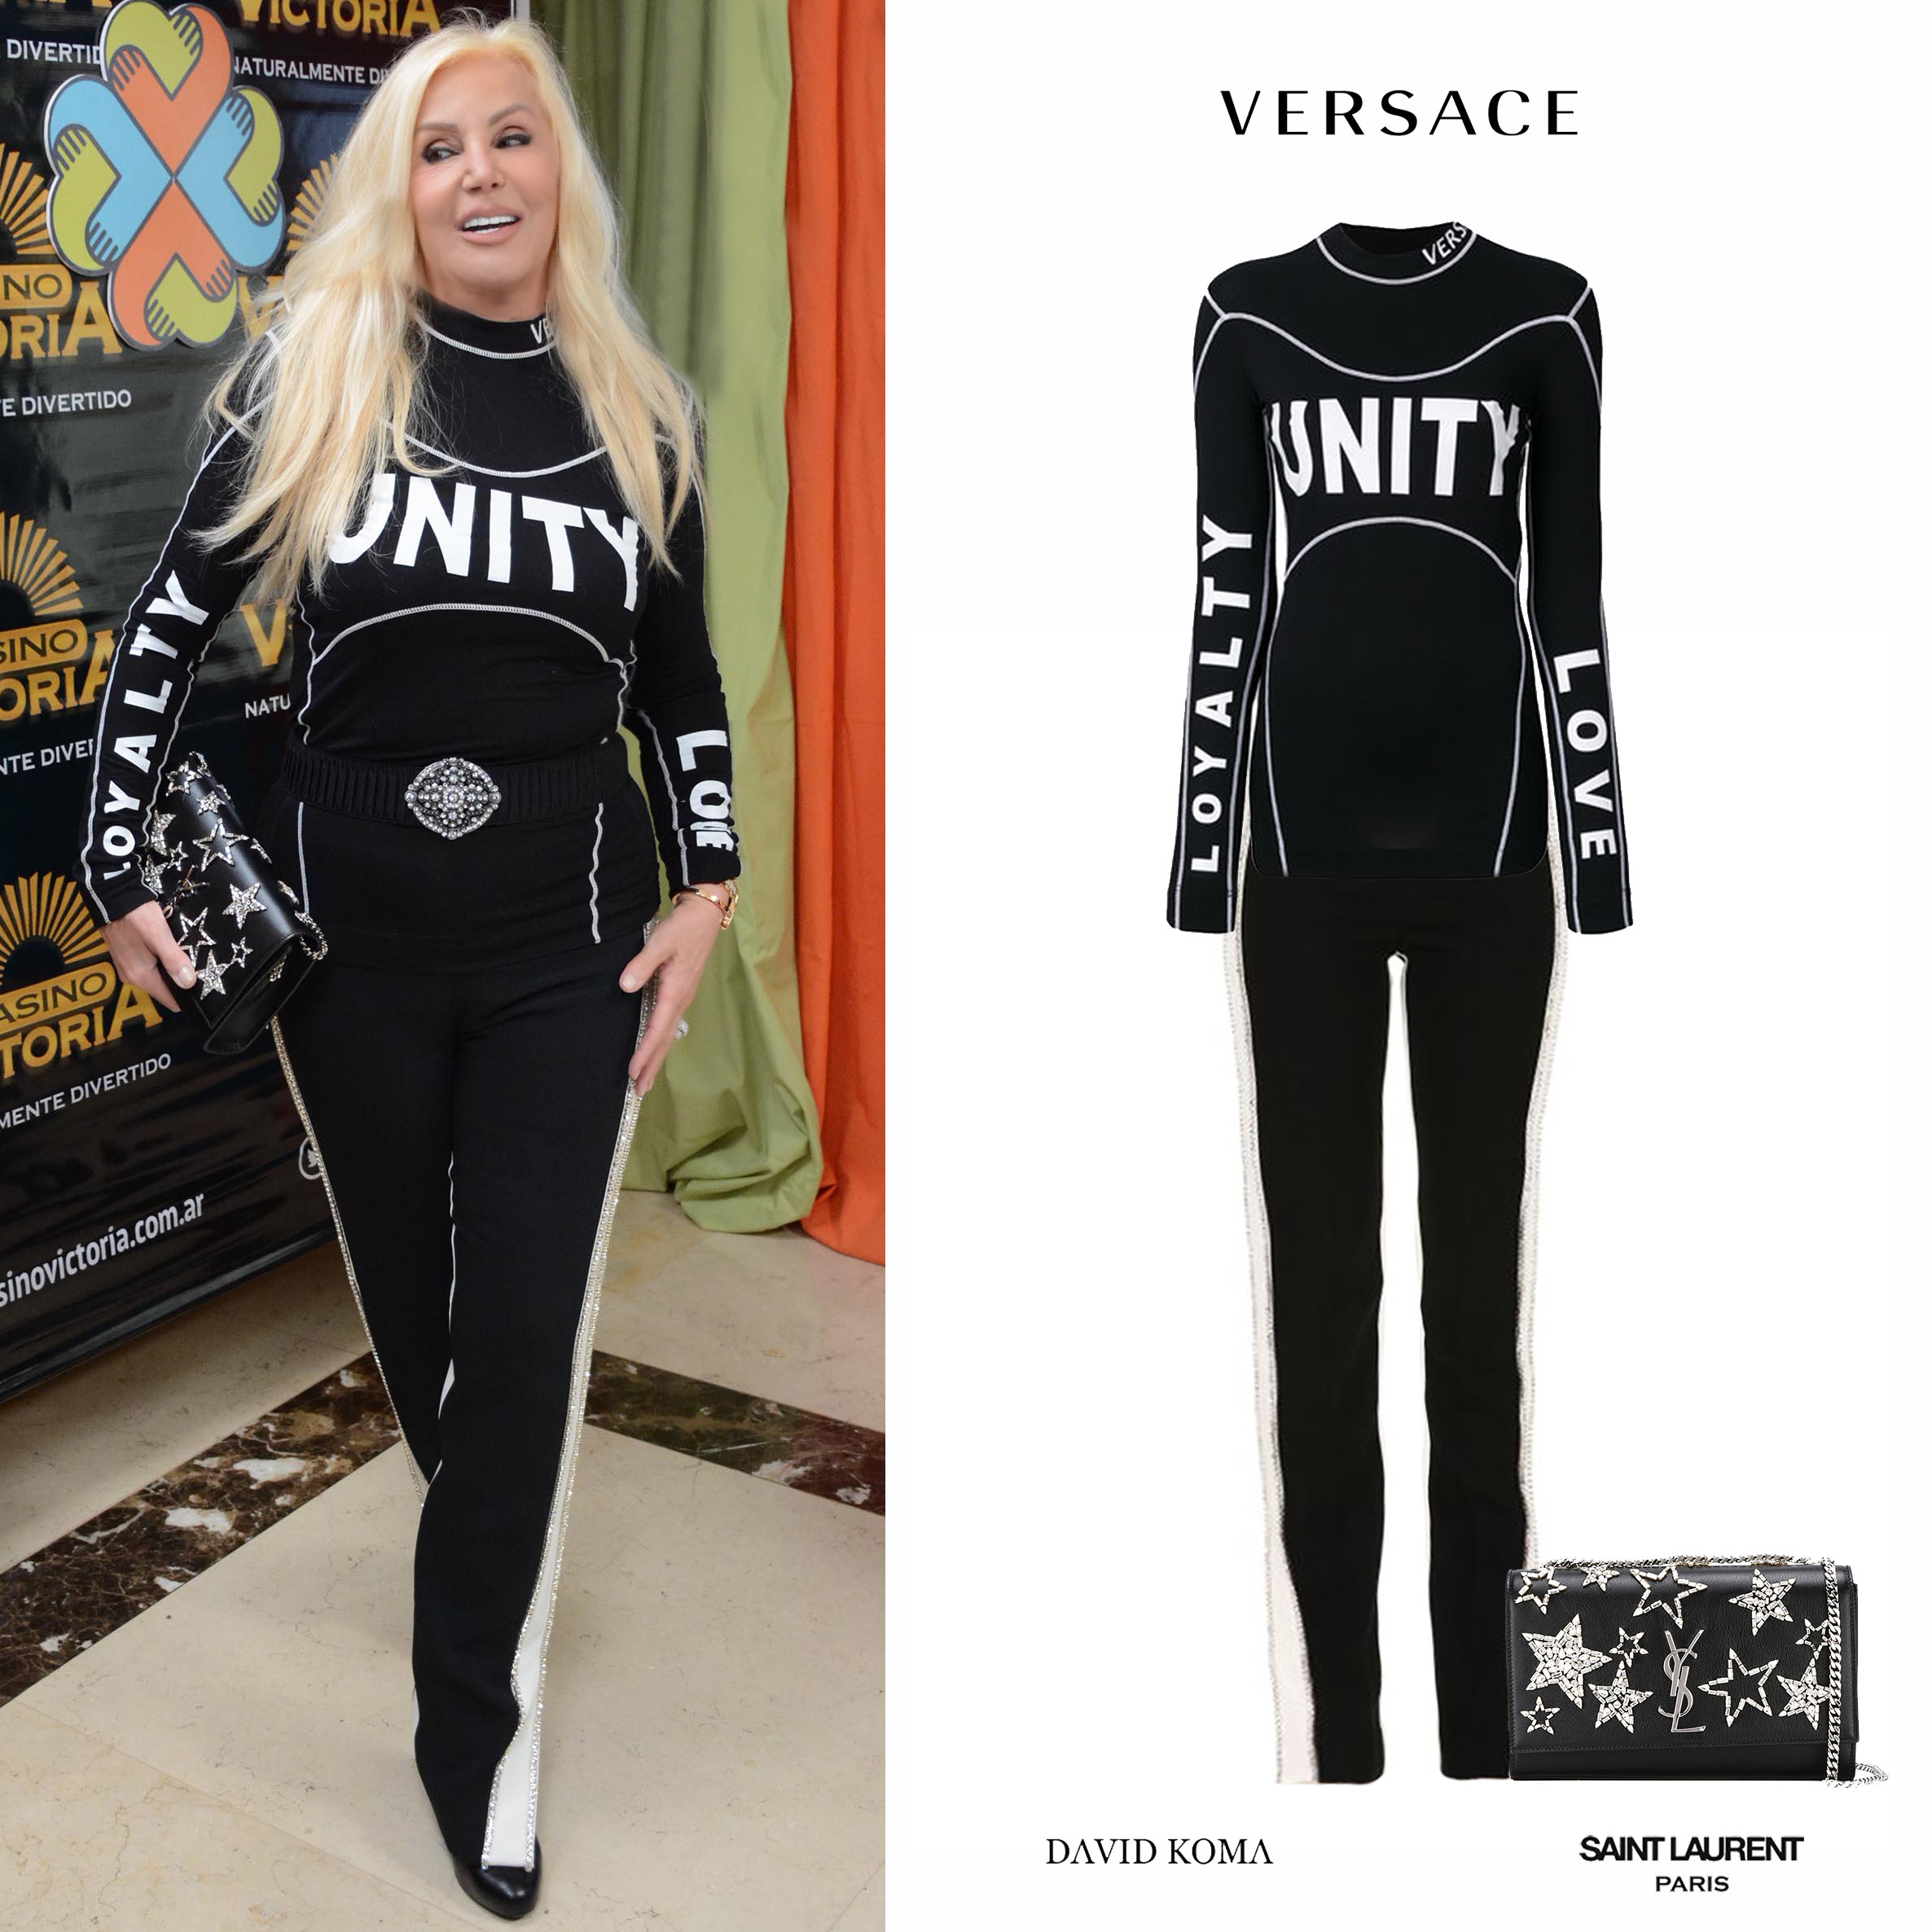 Susana_Gimenez_Casino_Victoria_Versace_Top_Saint_Laurent_Kate_Bag_David_Embellished_Candy_Trouser_Pantalones_Cartera.jpg